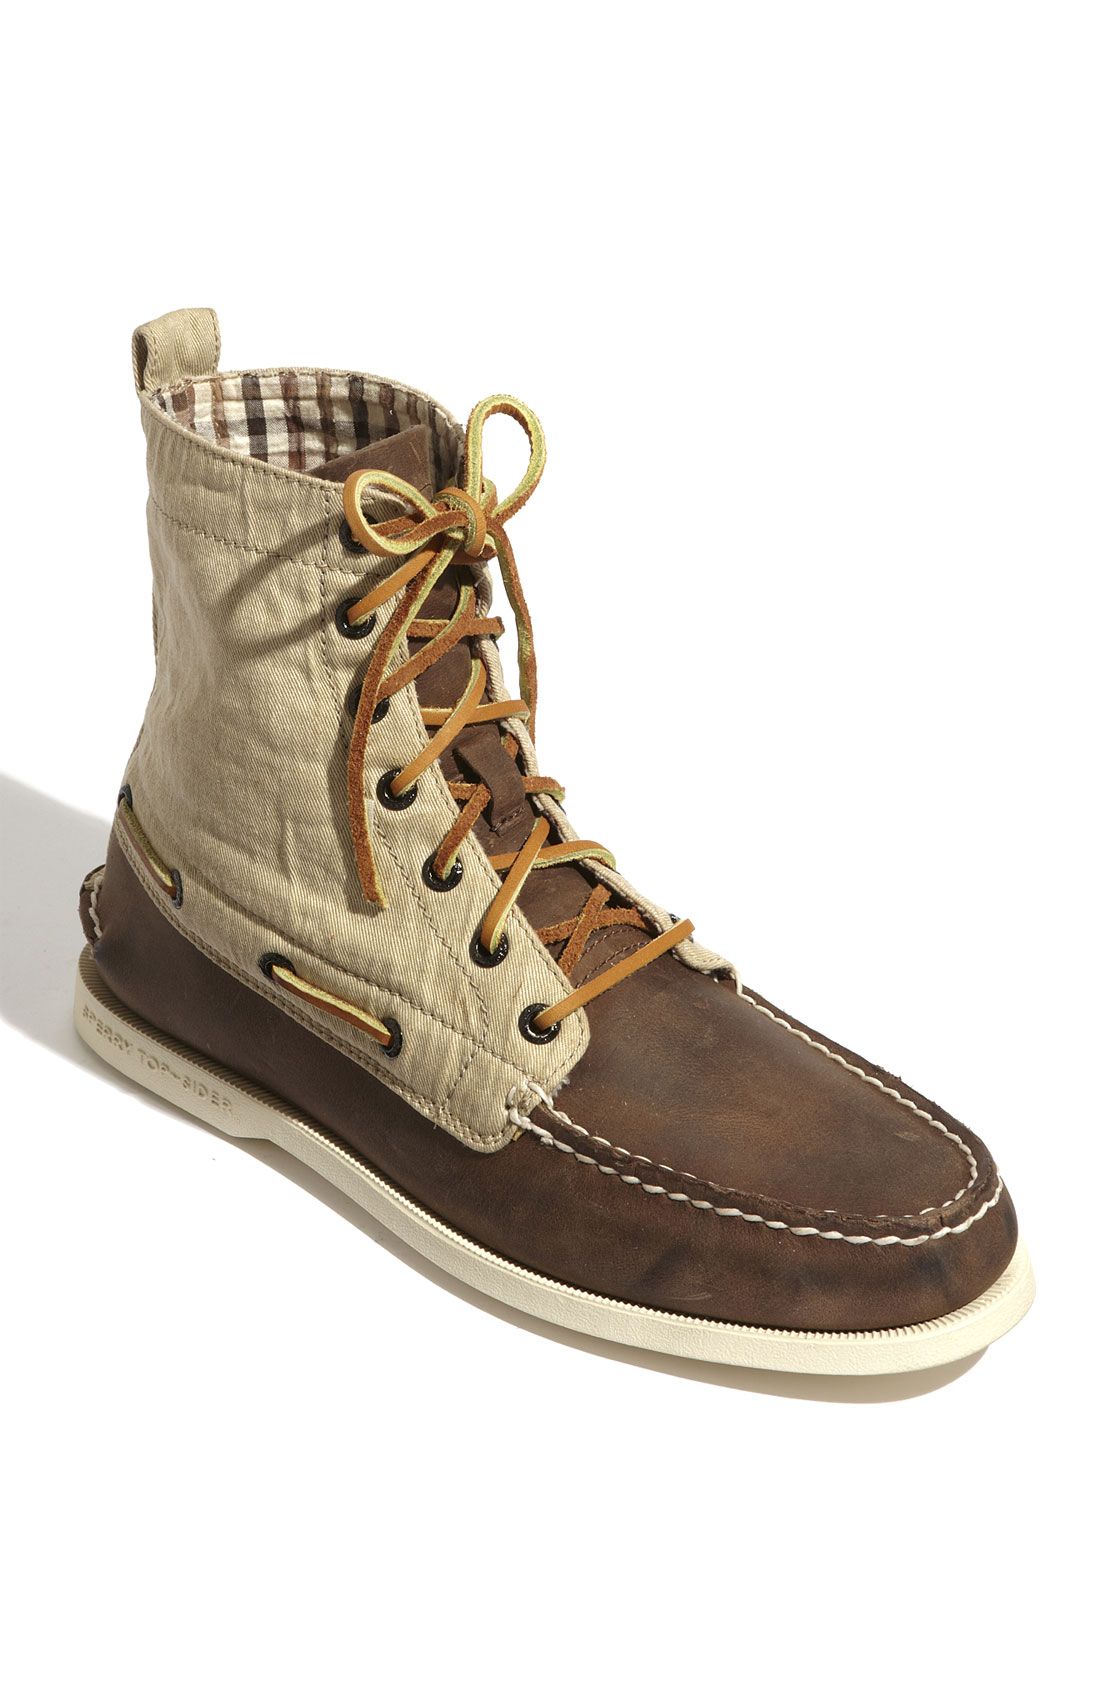 Sperry Top-sider Authentic Original 7-eye Lace-up in Brown ...